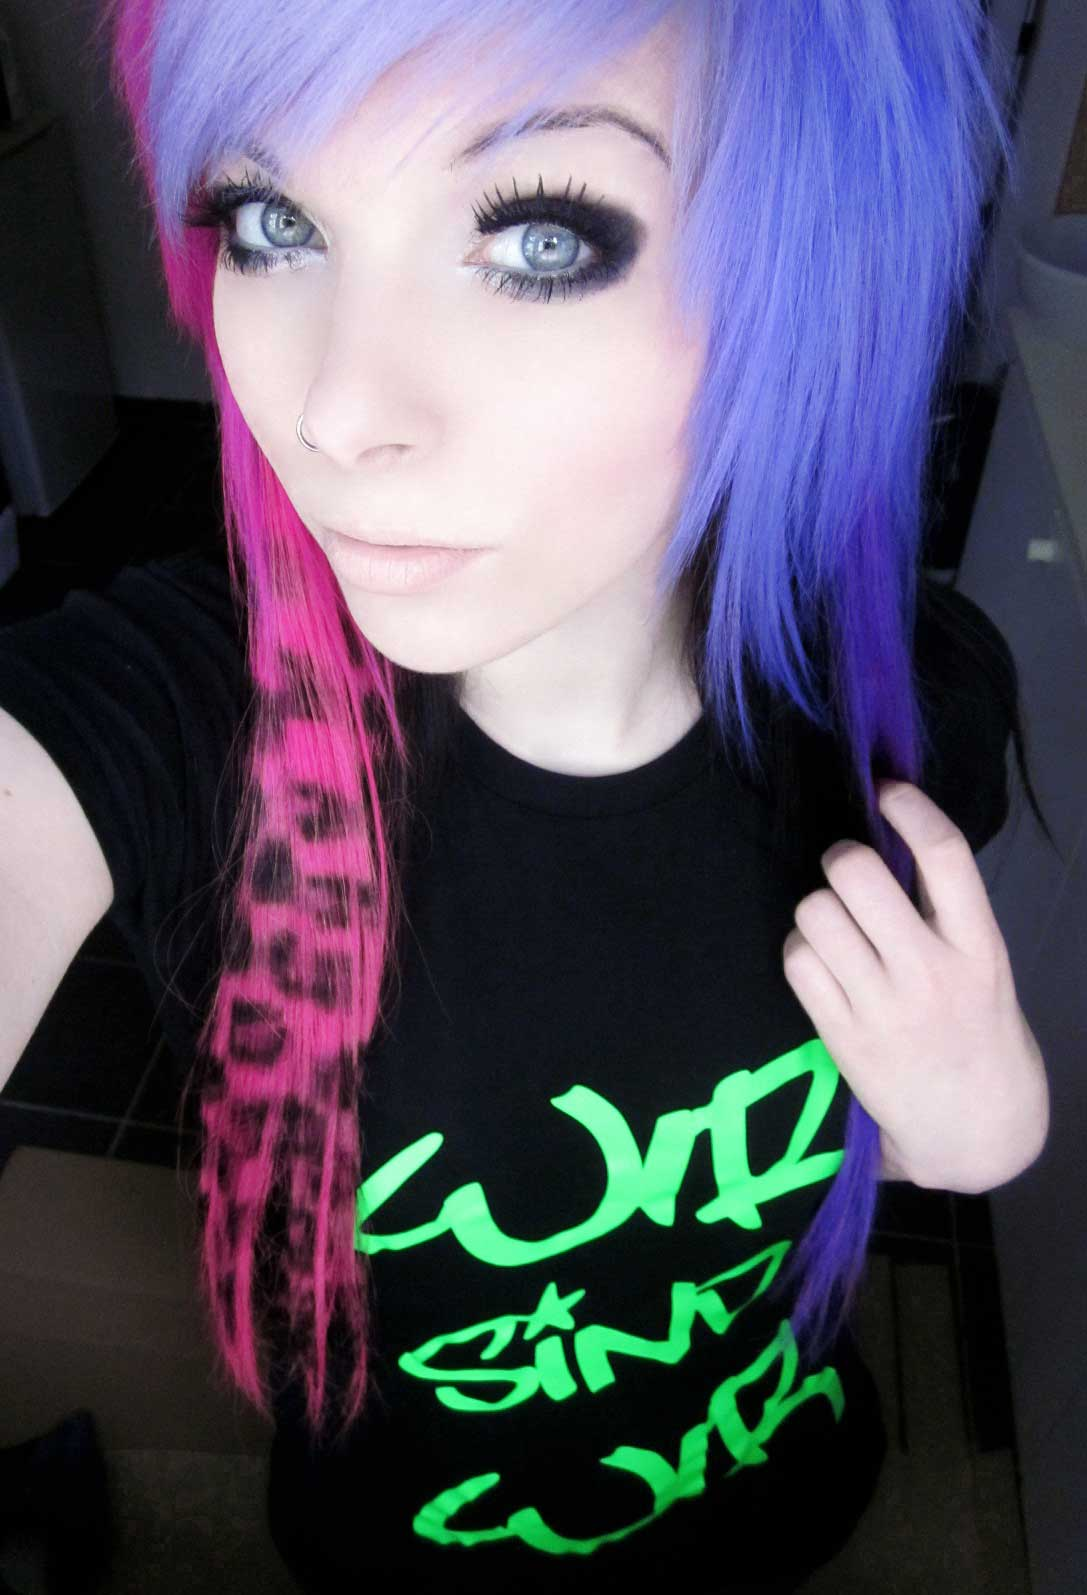 Emo Hairstyles For Girls - Get an Edgy Hairstyle to Stand Out Among ...